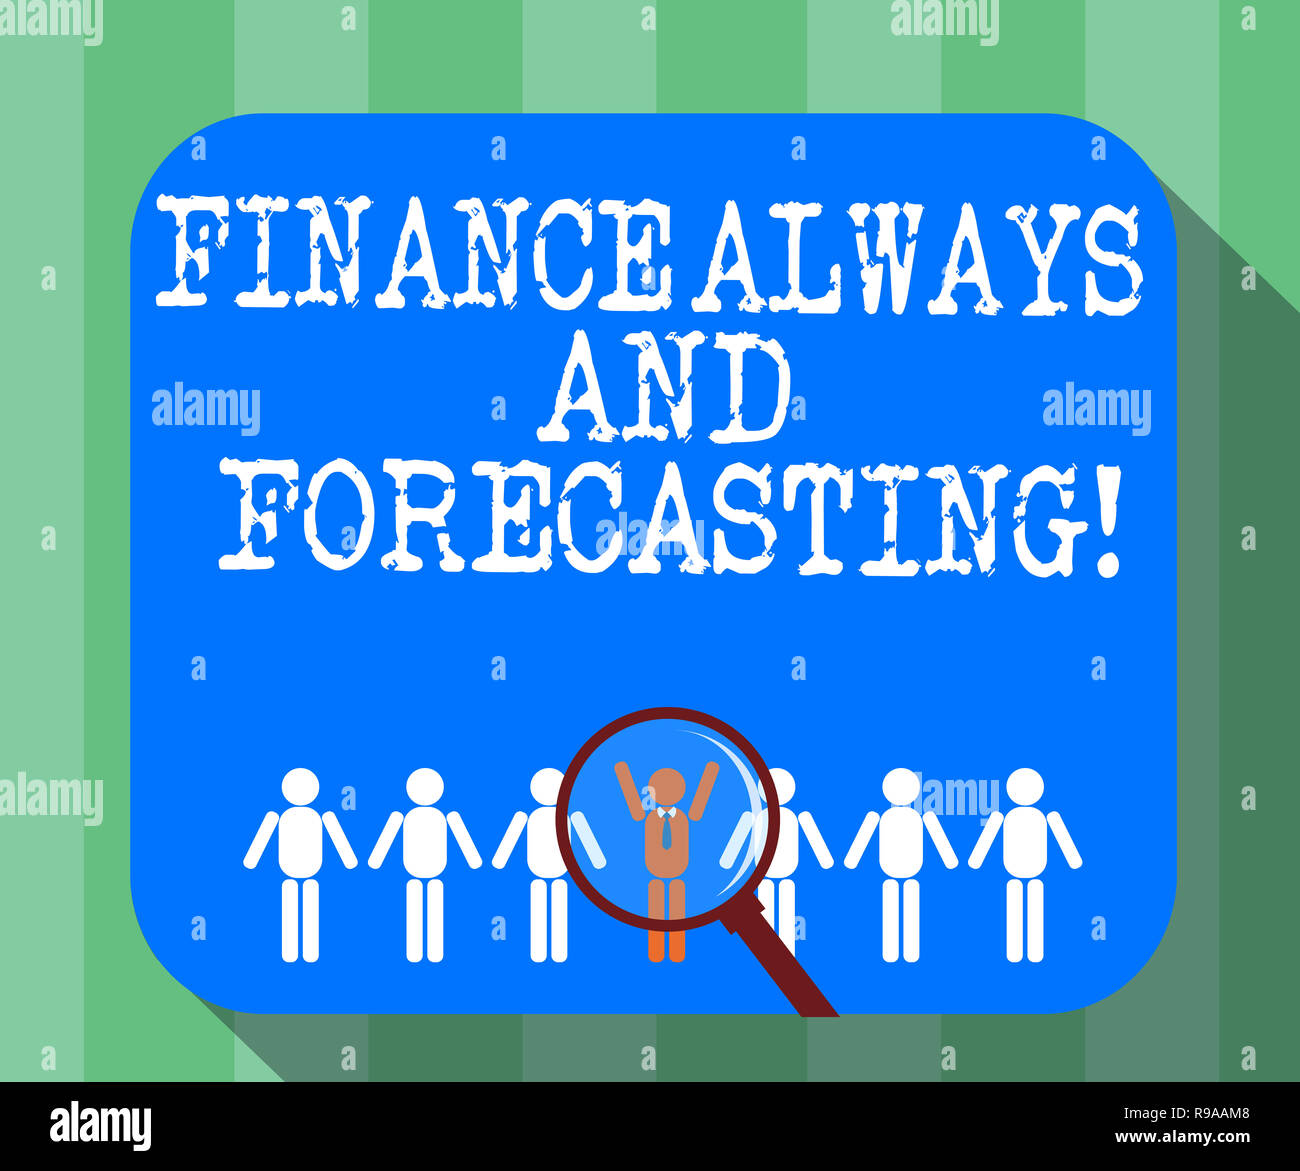 Handwriting Text Finance Always And Forecasting Concept Meaning Business Financial Forecast Money Predictions Magnifying Glover Chosen Man Figure